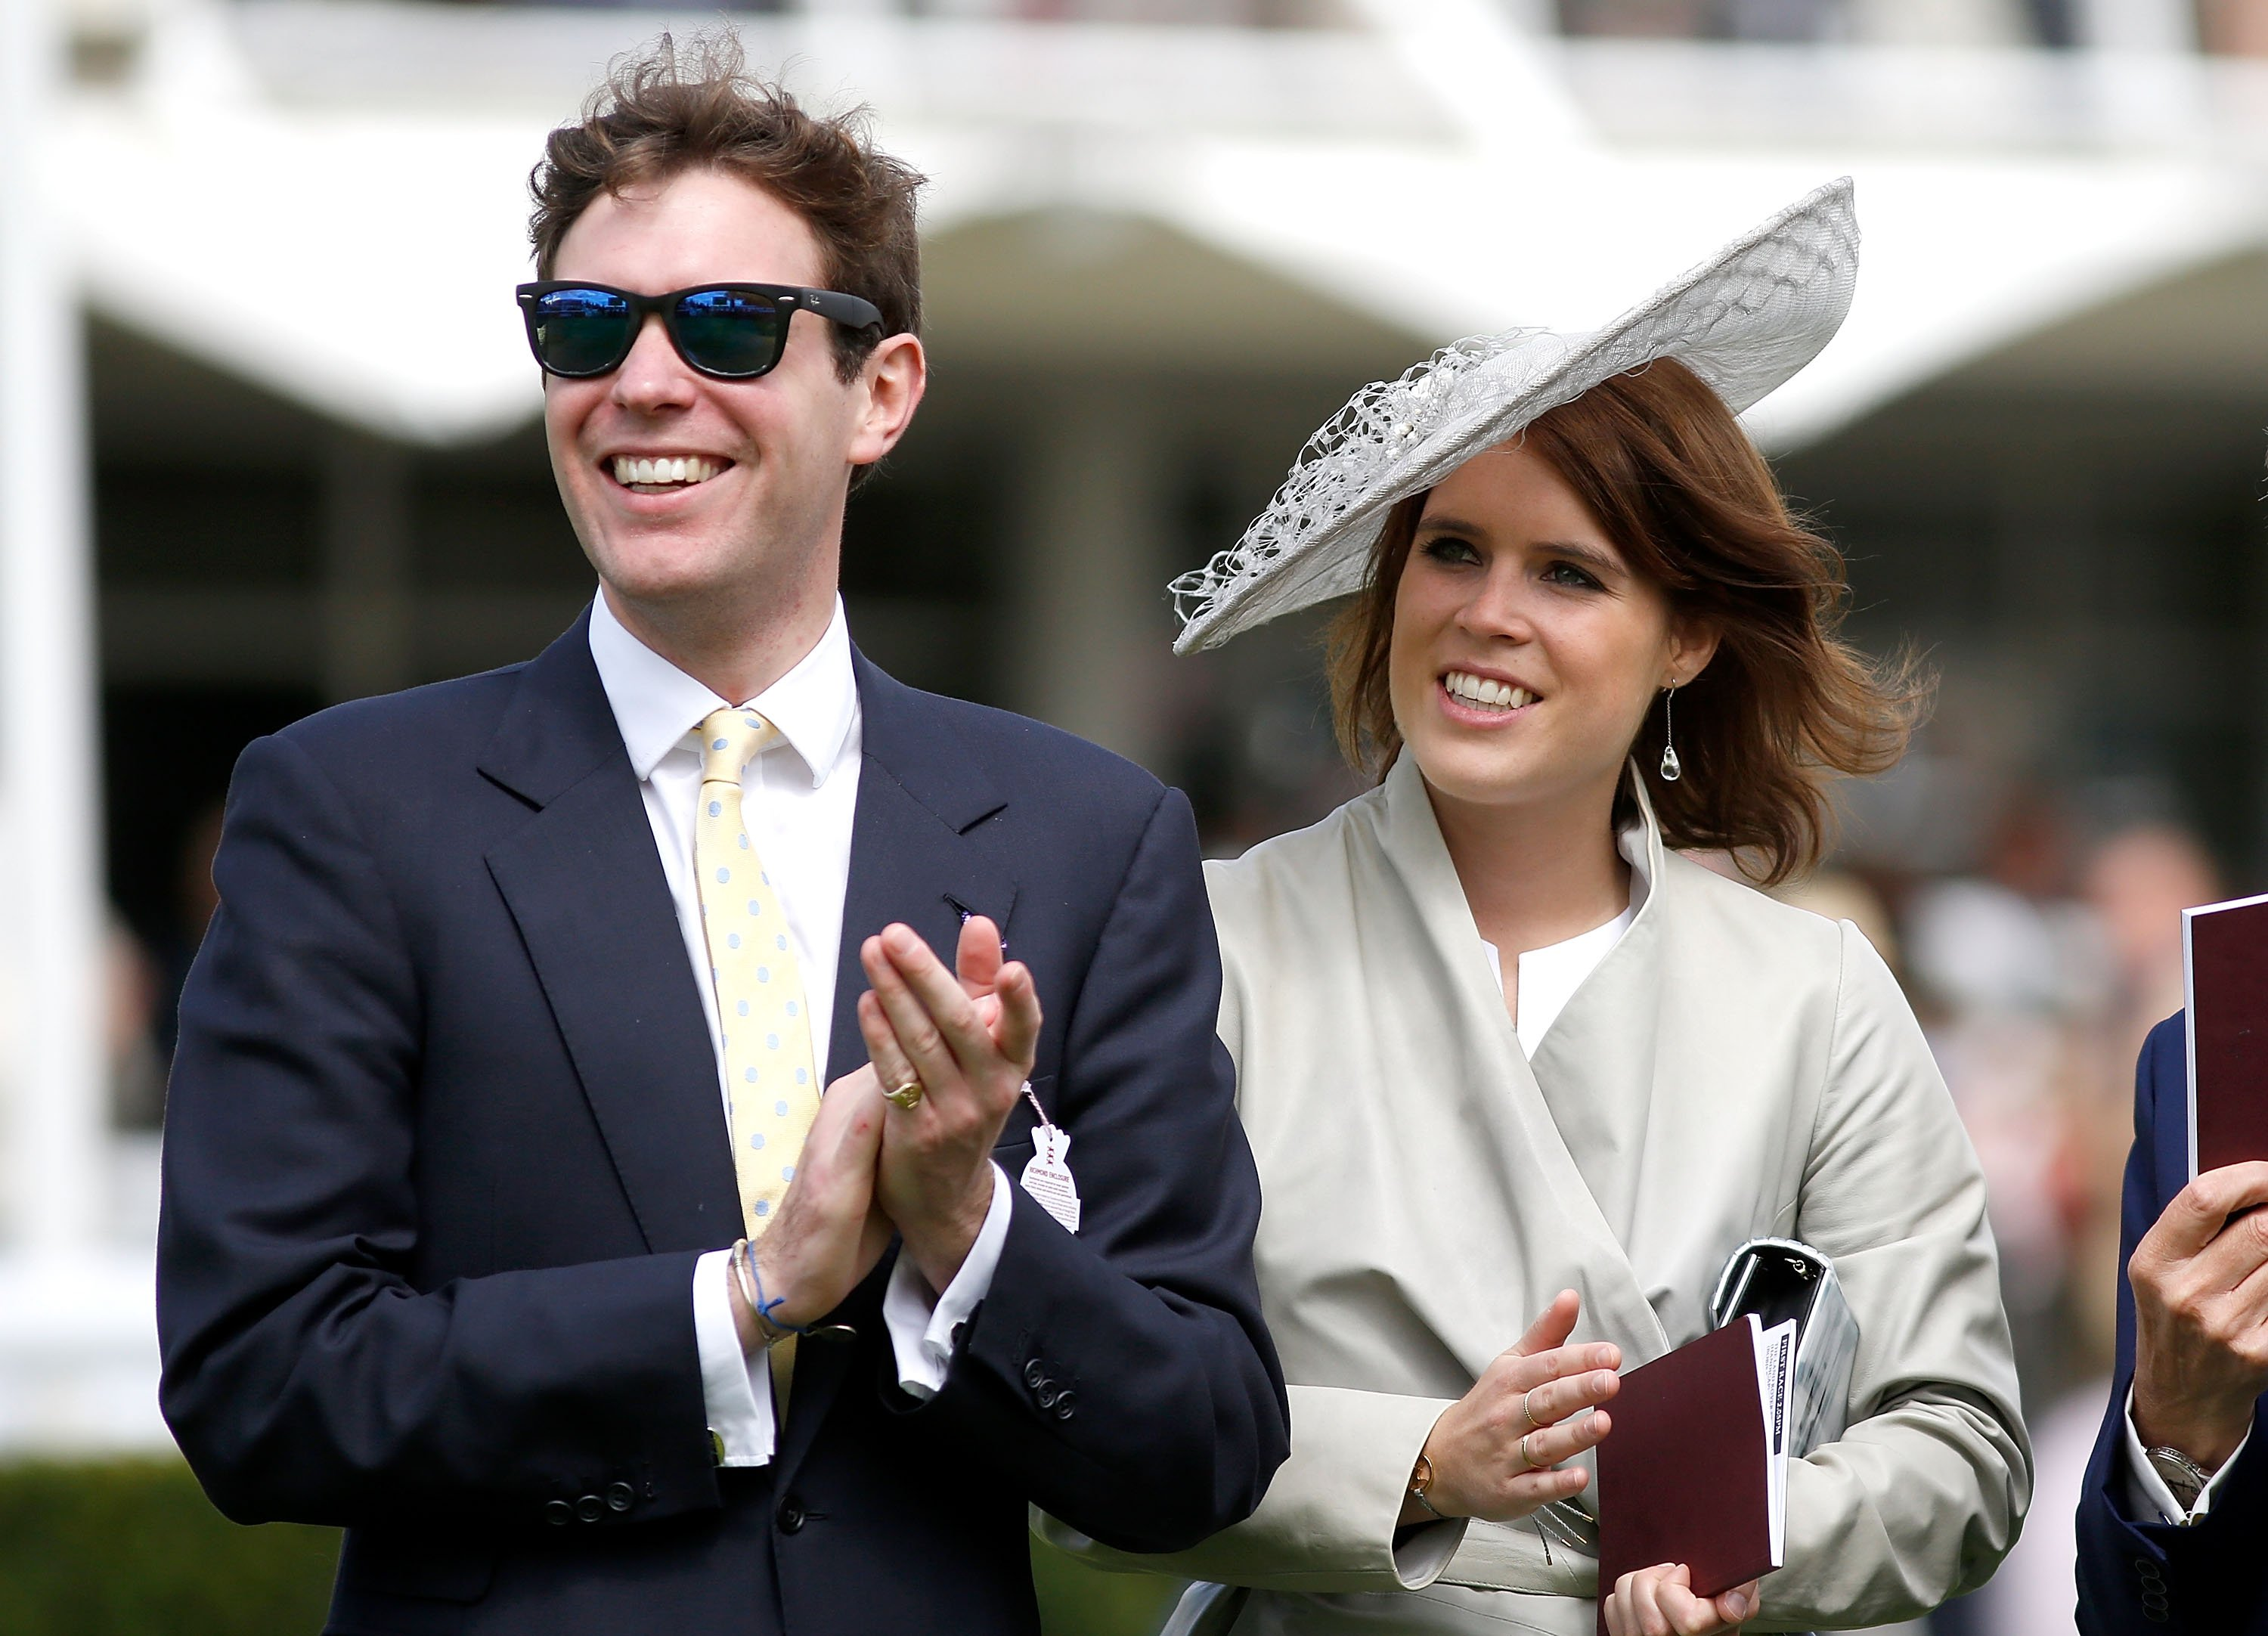 Princess Eugenie pictured attending at the Qatar Goodwood Festival at Goodwood Racecourse in England 2015. | Photo: Getty Images